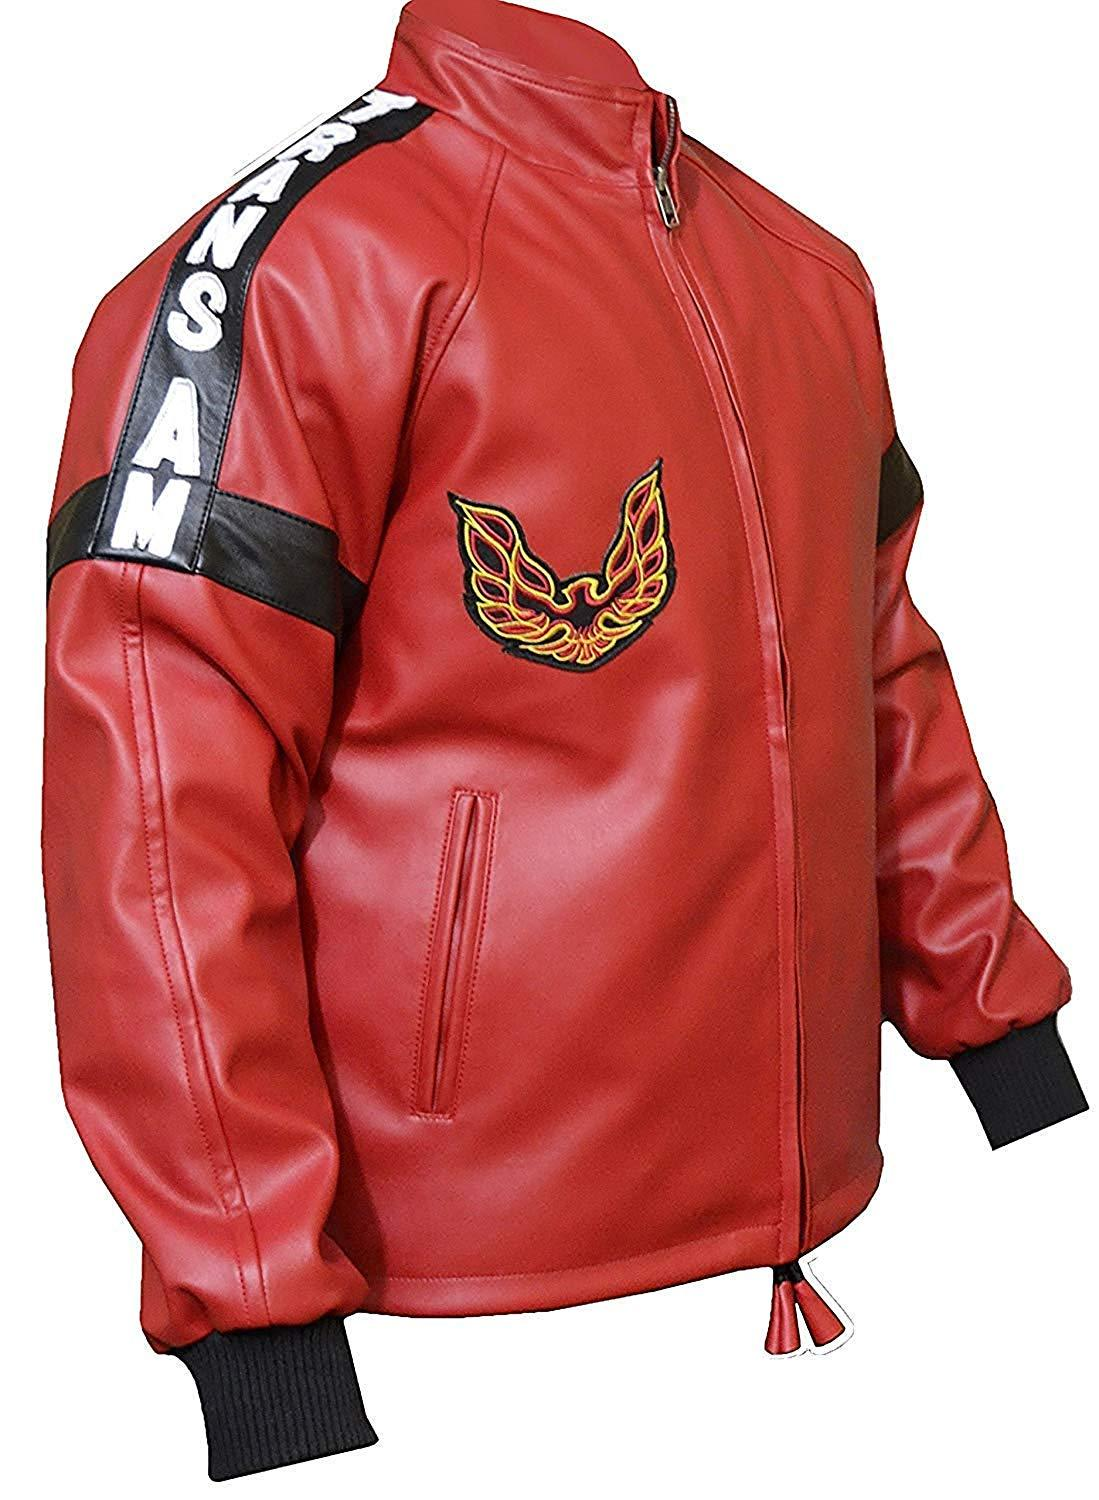 Men s smokey and the bandit red bomber leather jacket